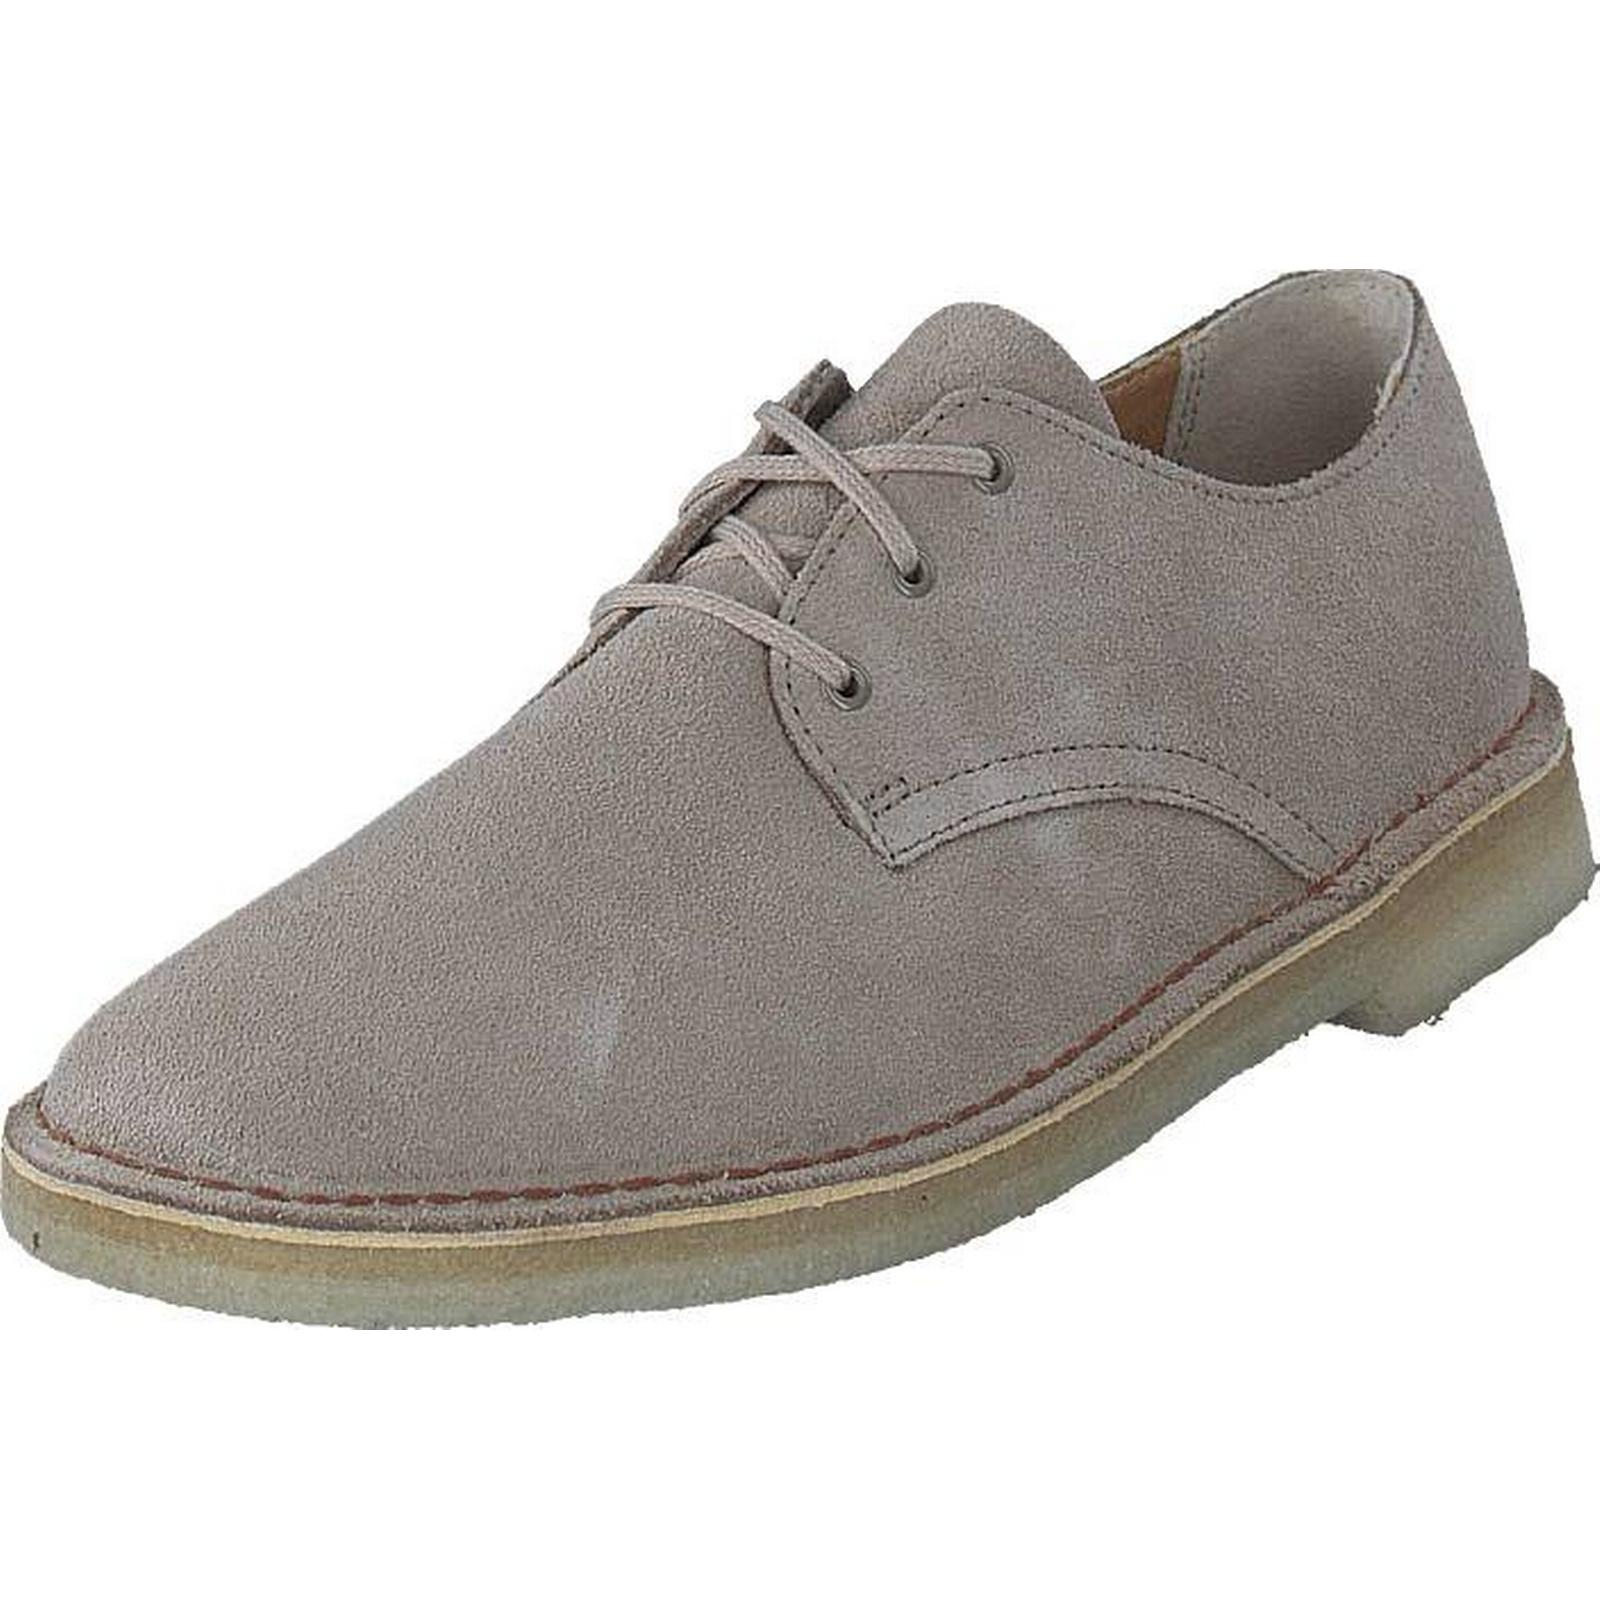 Clarks Desert Crosby Sand Suede, Shoes, Flats, Dress Shoes, Brown, 45 Male, 45 Brown, 814a50